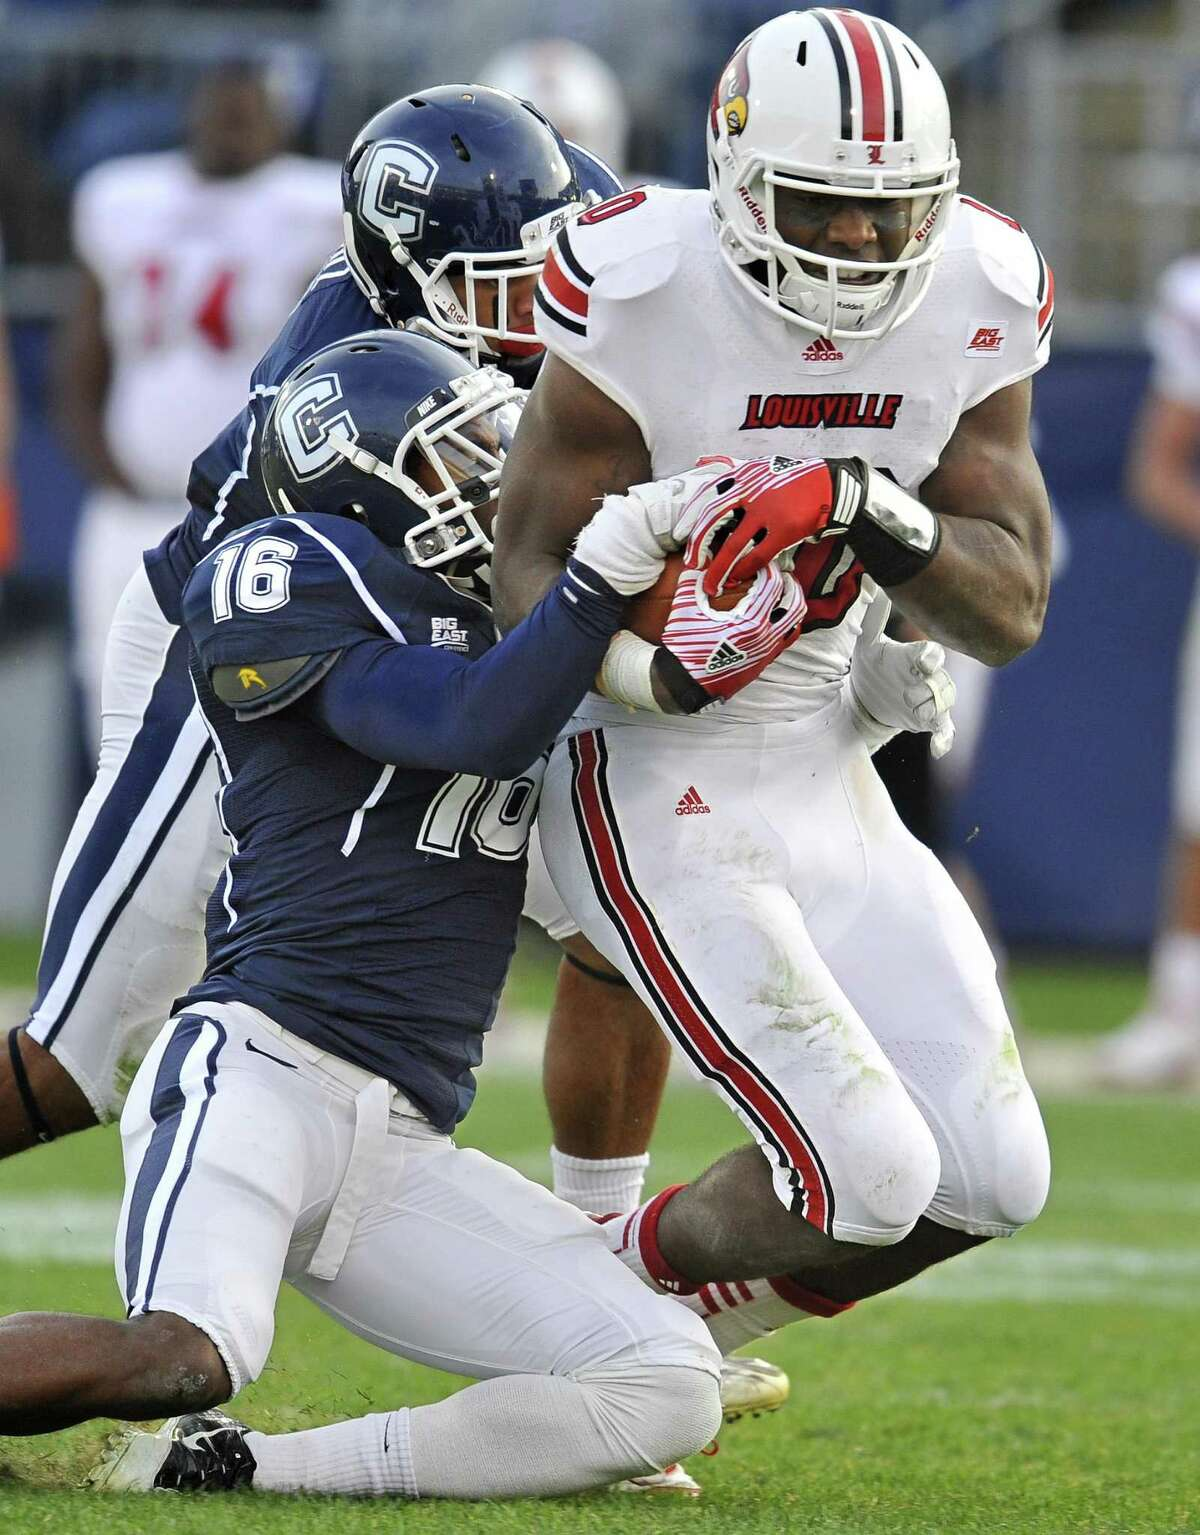 Louisville's Dominque Brown, right, gains yards while pursued by Connecticut's Byron Jones (16), and Dwayne Gratz, back, in the second half of an NCAA college football game at Rentschler Field in East Hartford, Conn., Saturday, Nov. 19, 2011. (AP Photo/Jessica Hill)